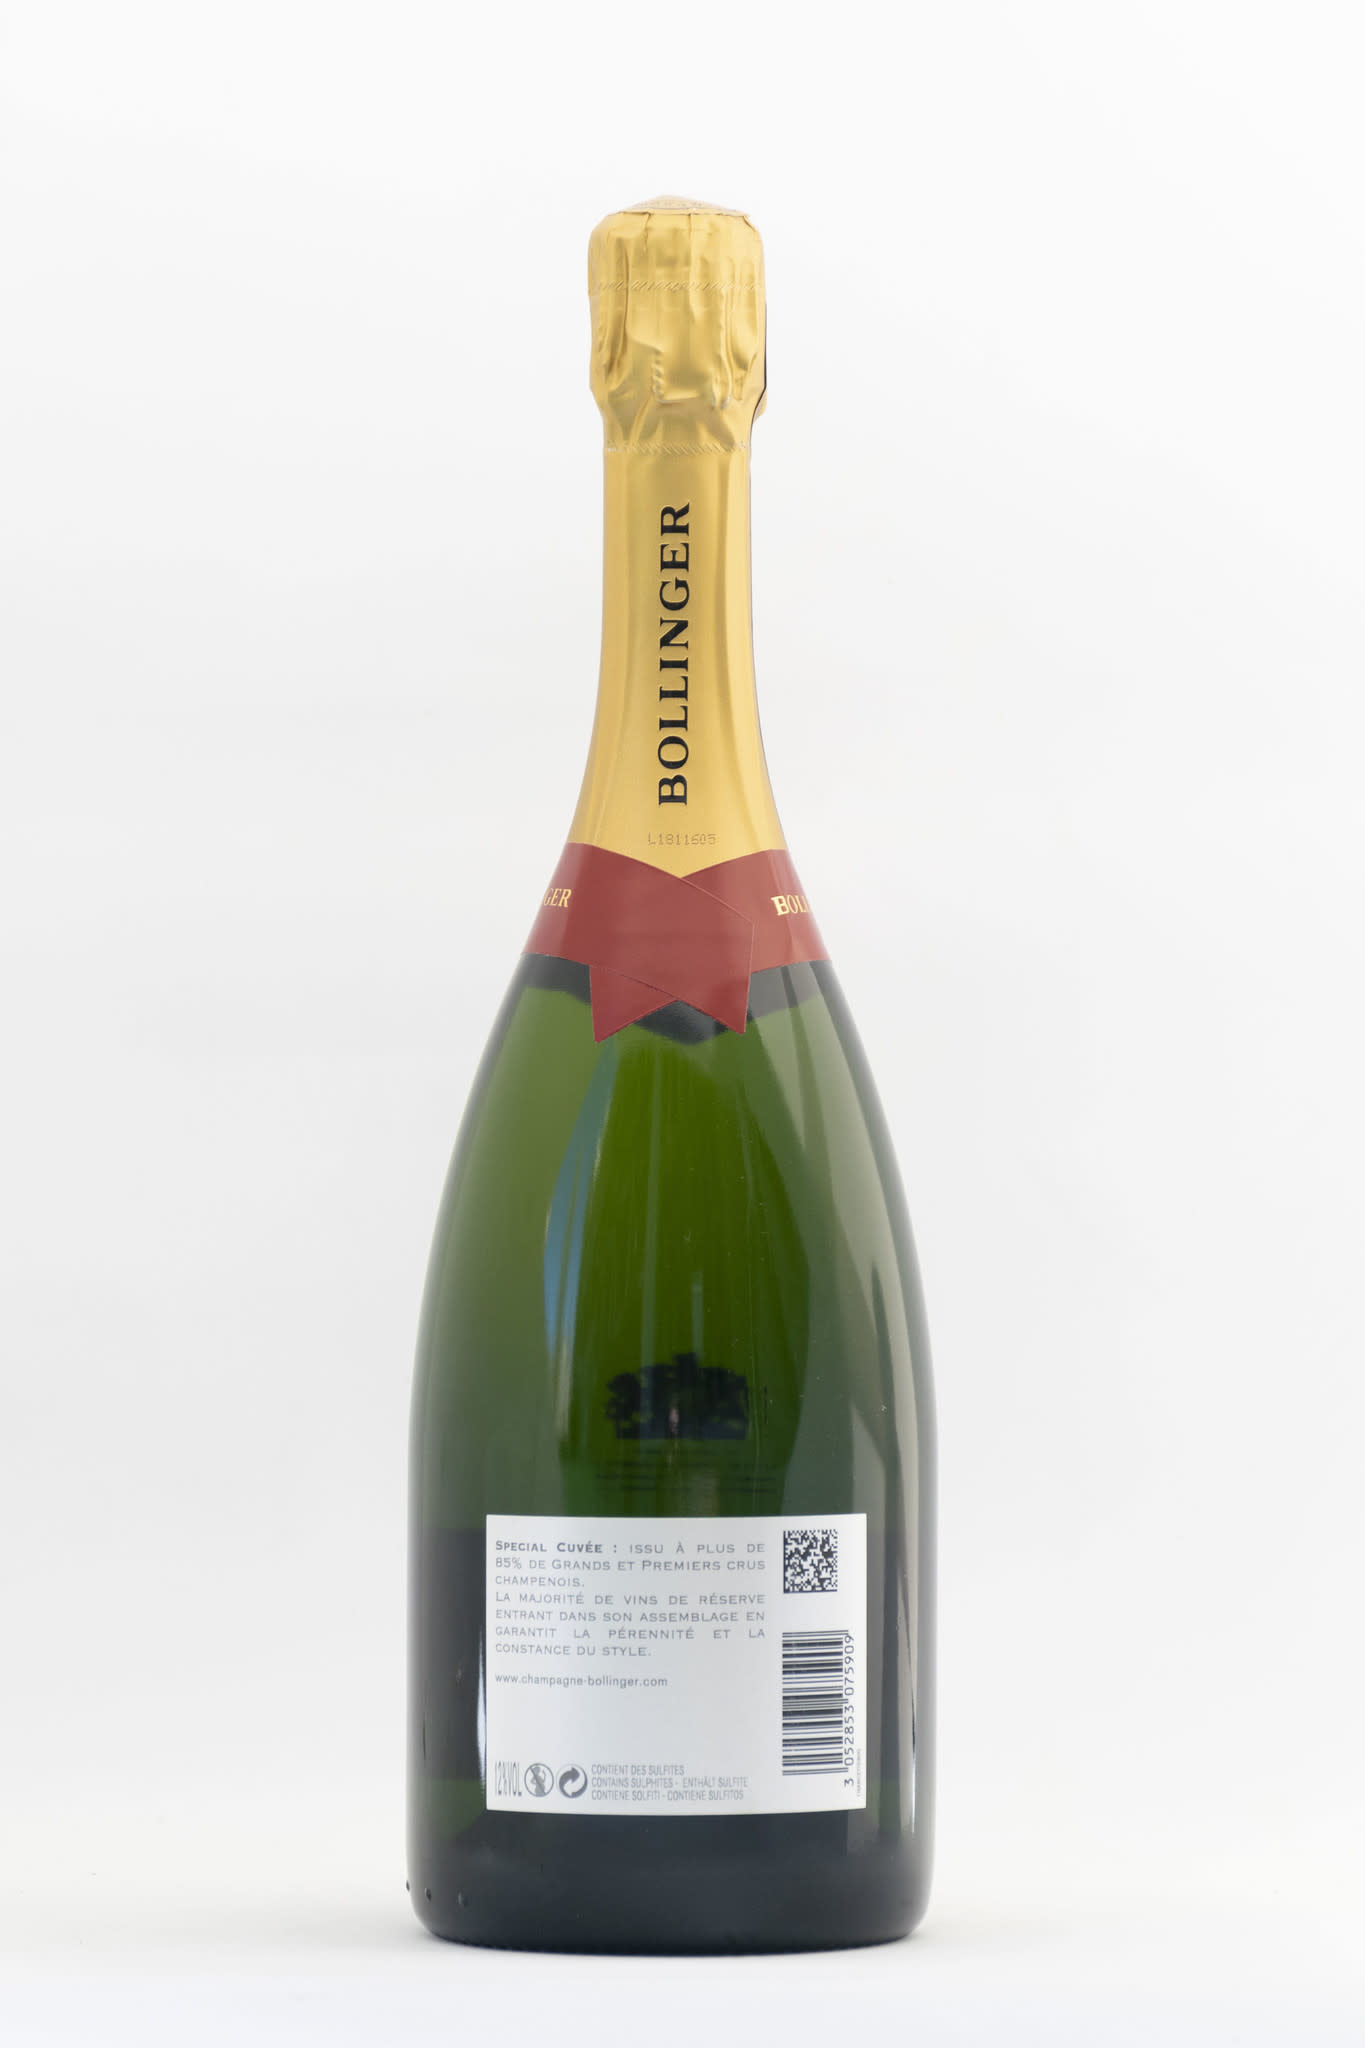 Champagne Bolliger | Special Cuvee |  Brut